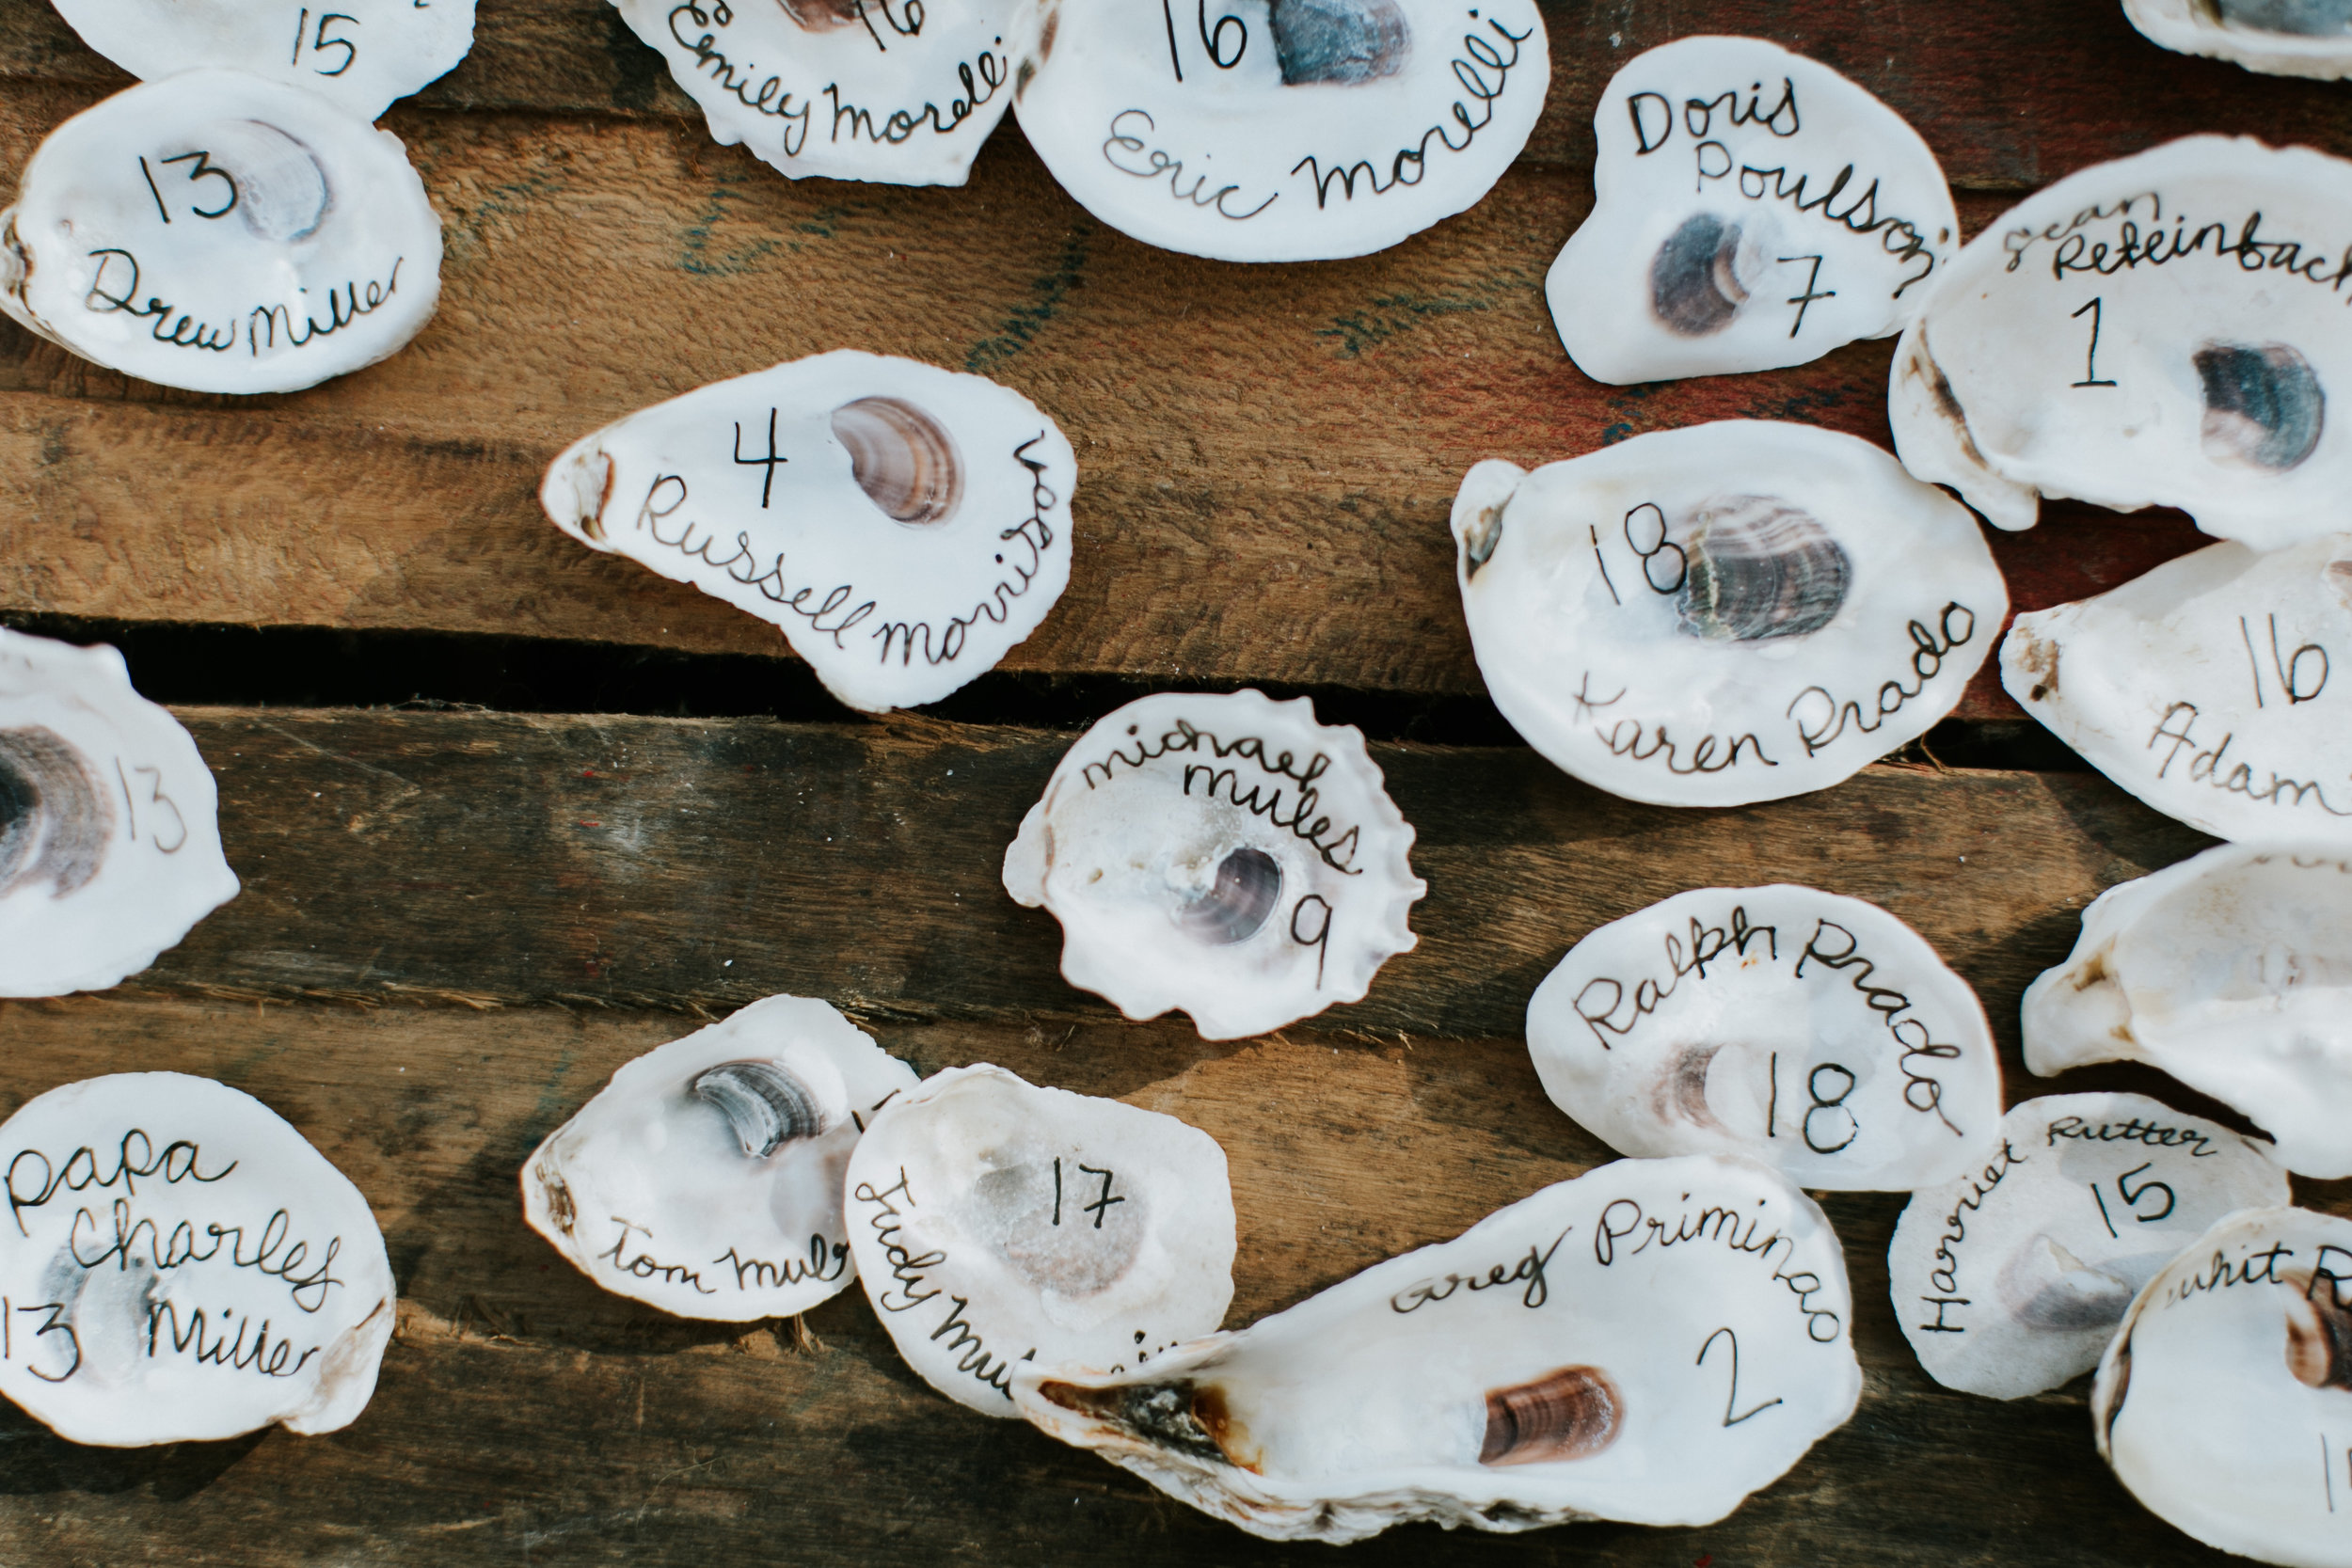 Rustic Oyster Themed Eastern Shore Maryland Outdoor Wedding by East Made Event Company Wedding Planner and Bekah Kay Creative562.jpg